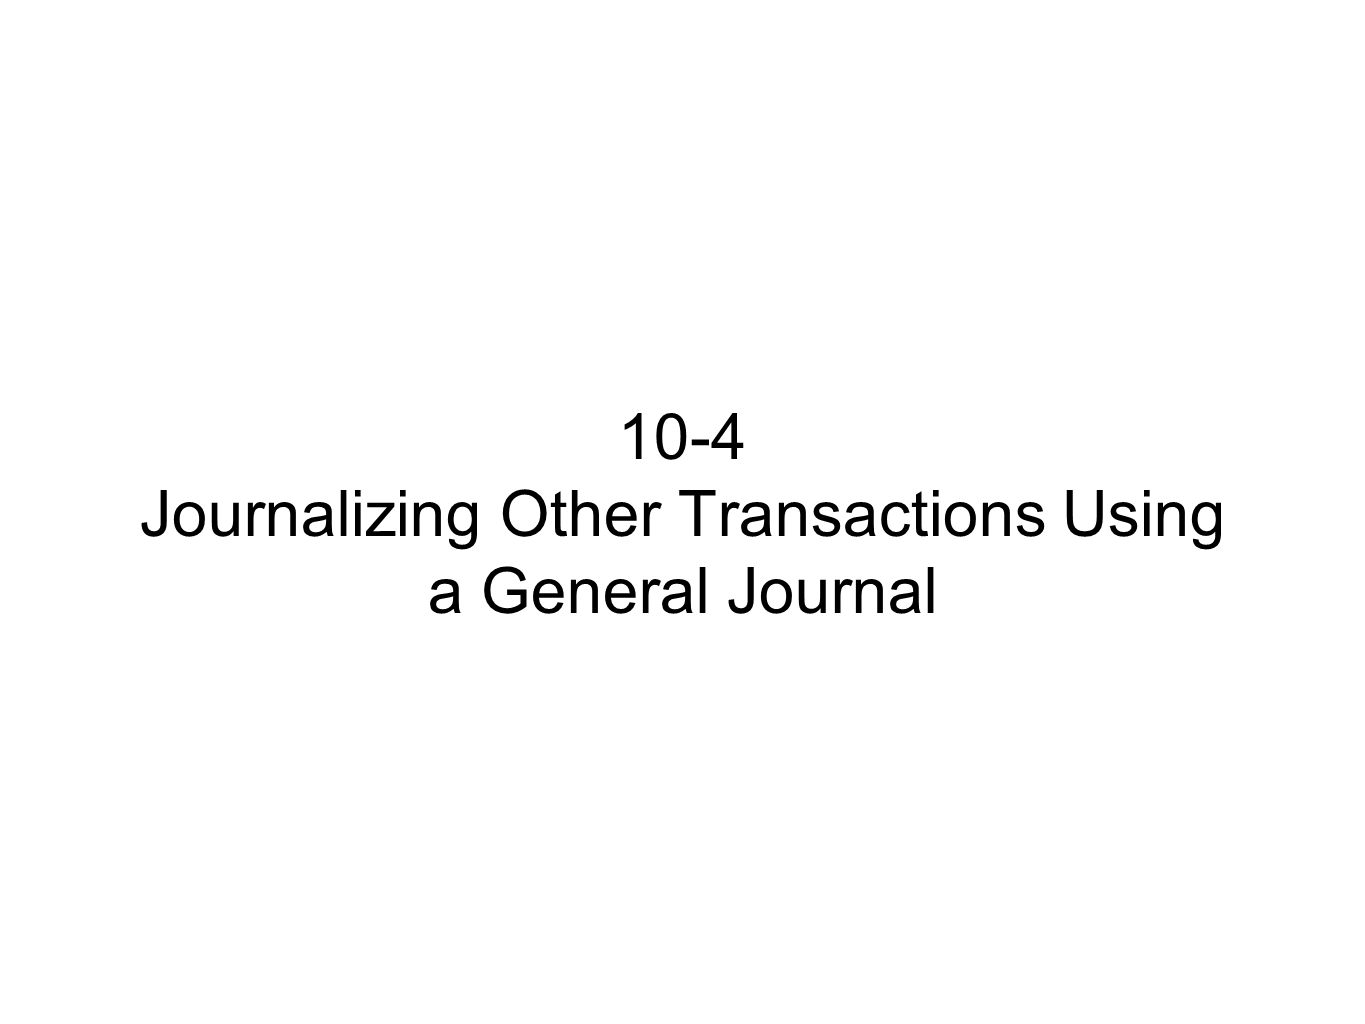 10-4 Journalizing Other Transactions Using a General Journal